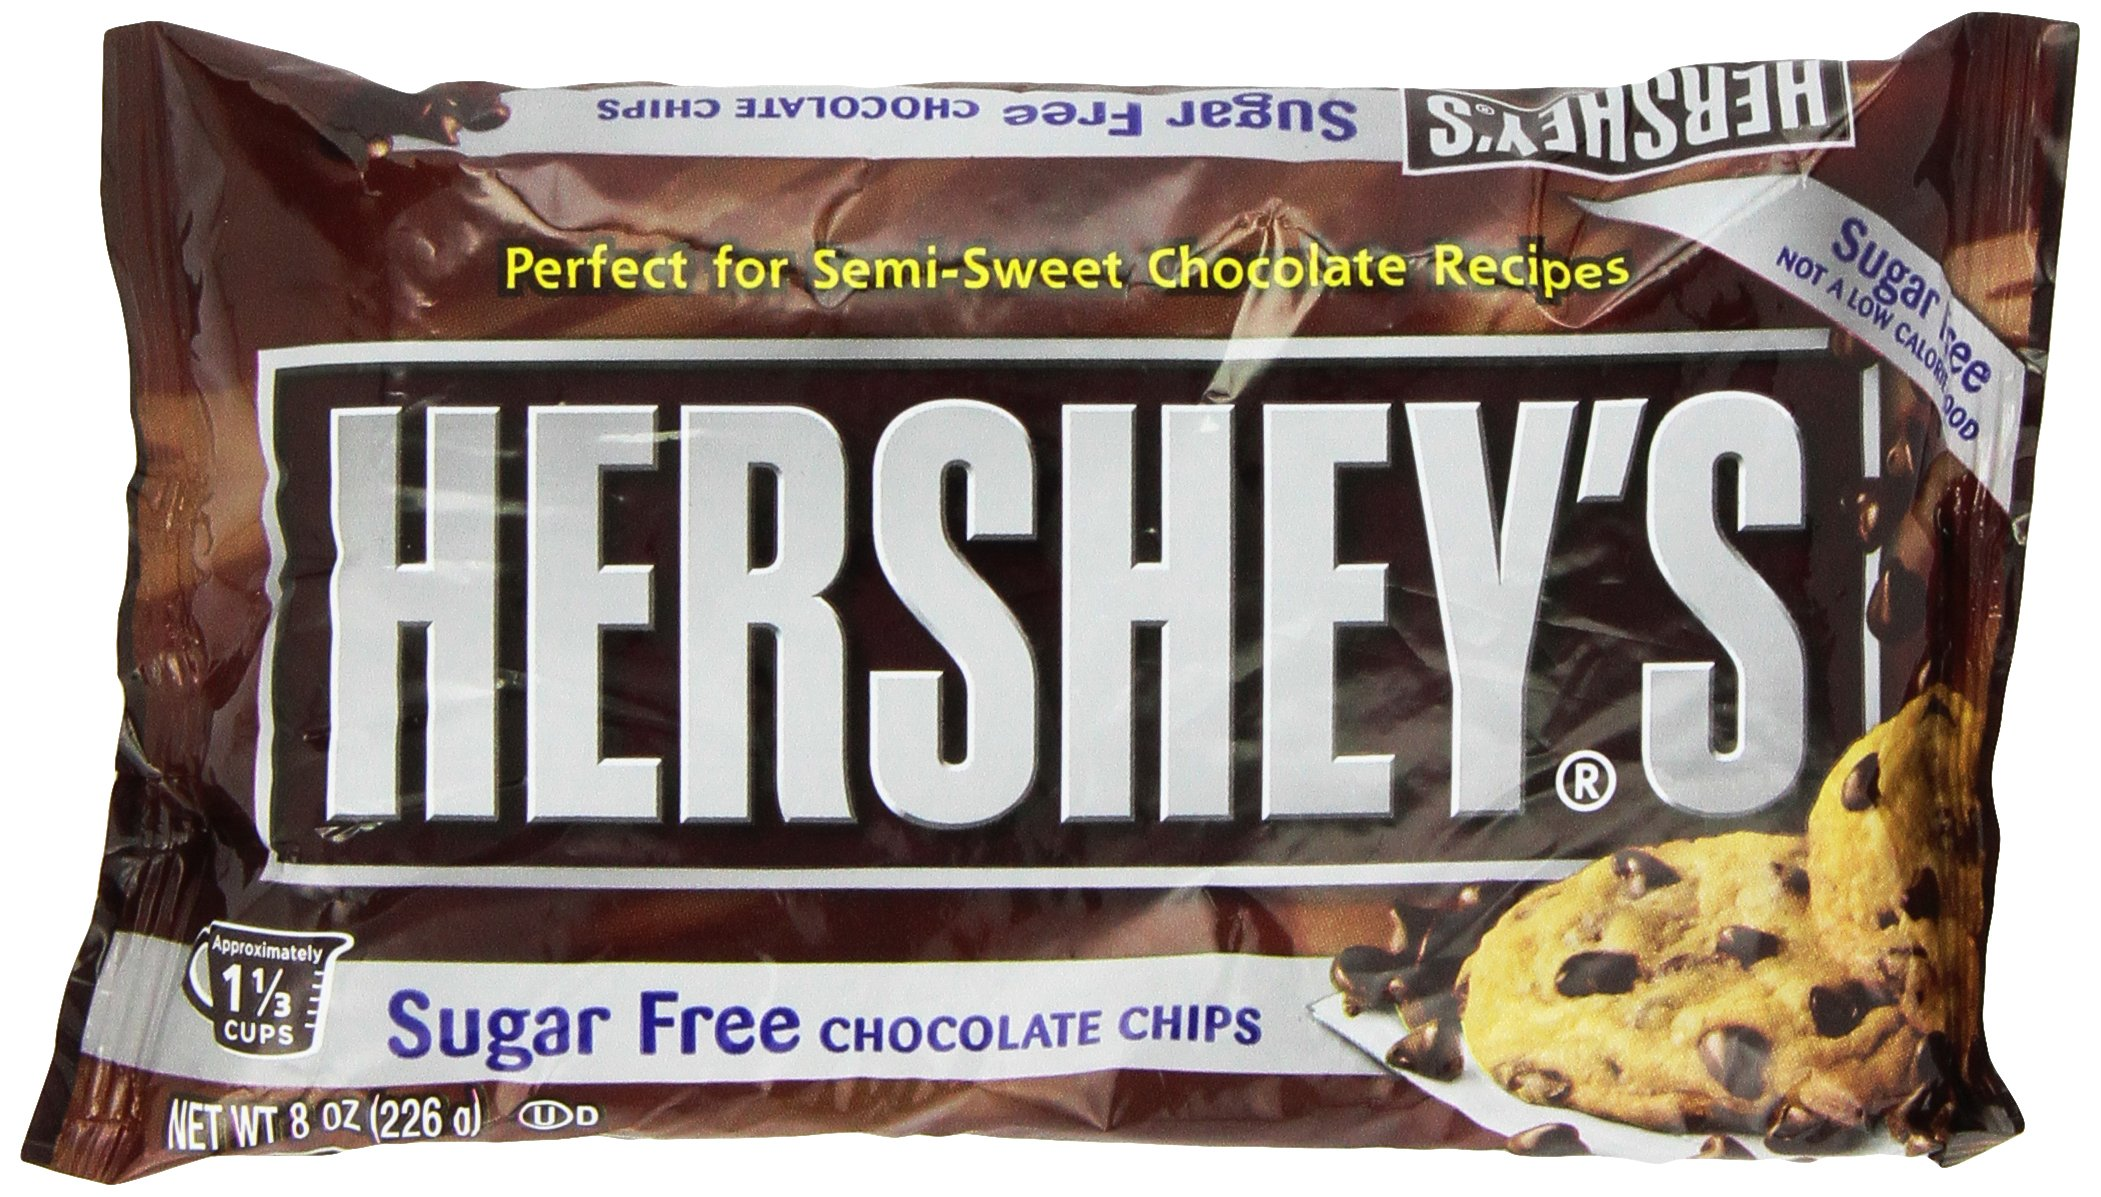 Hershey's Sugar Free Semi-Sweet Baking Chips, 8 Ounce (Pack of 12) by HERSHEY'S